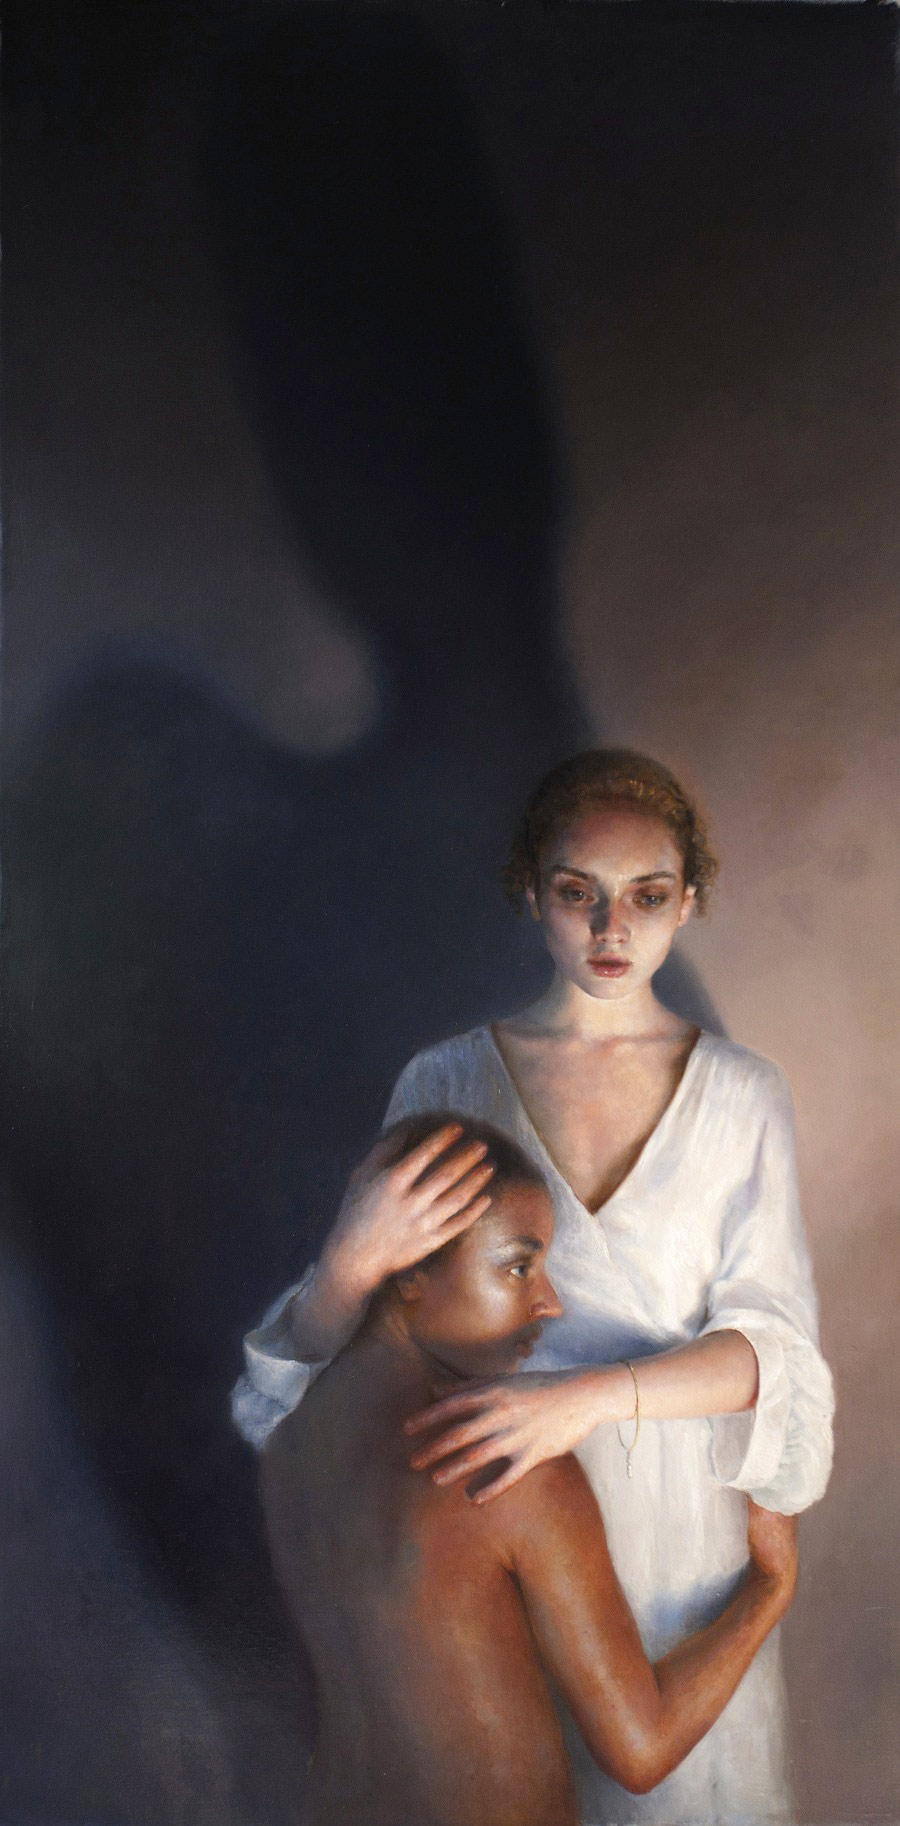 Artist Spotlight: Maria Kreyn – BOOOOOOOM! – CREATE * INSPIRE * COMMUNITY * ART * DESIGN * MUSIC * FILM * PHOTO * PROJECTS